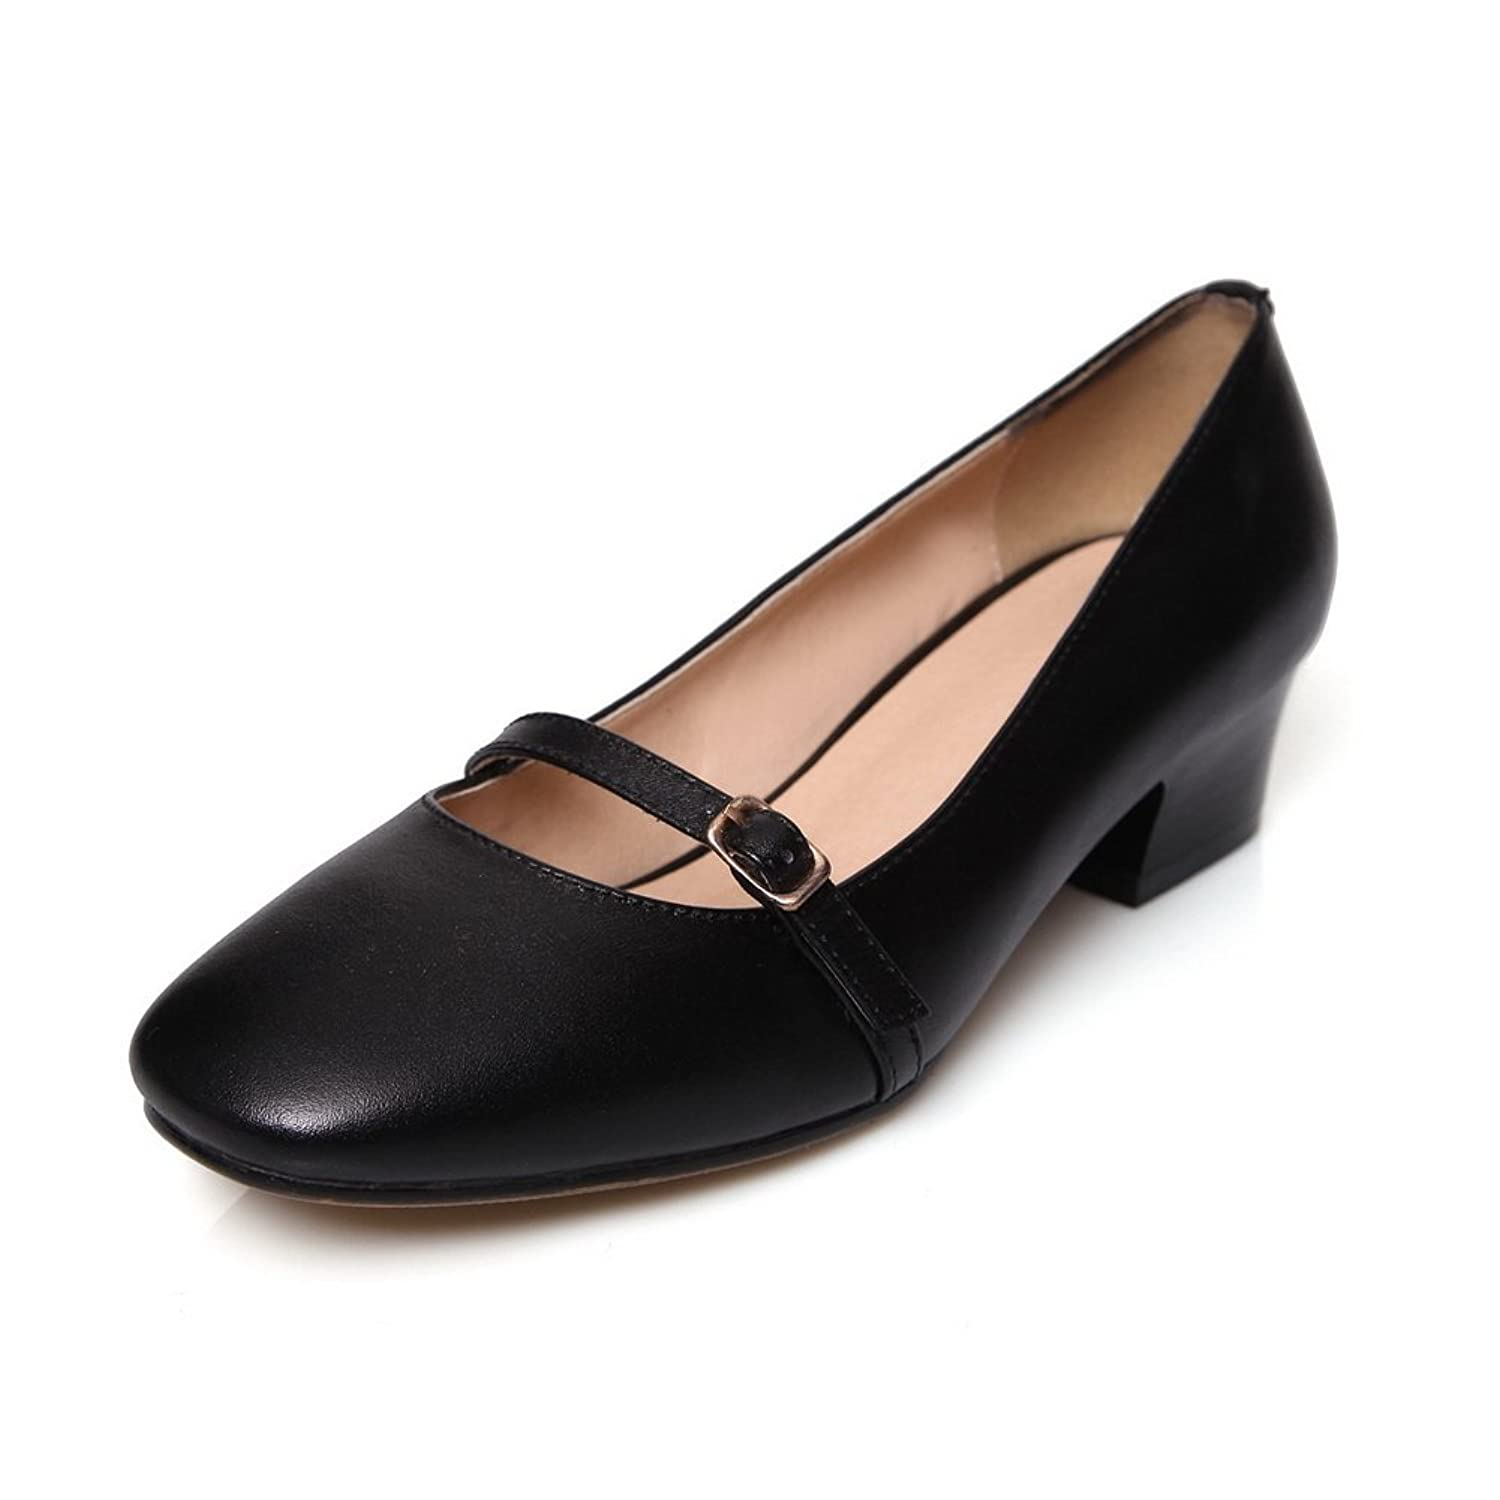 AdeeSu Womens Slip-Resistant Round-Toe Solid Pleather Pumps Shoes SDC03981